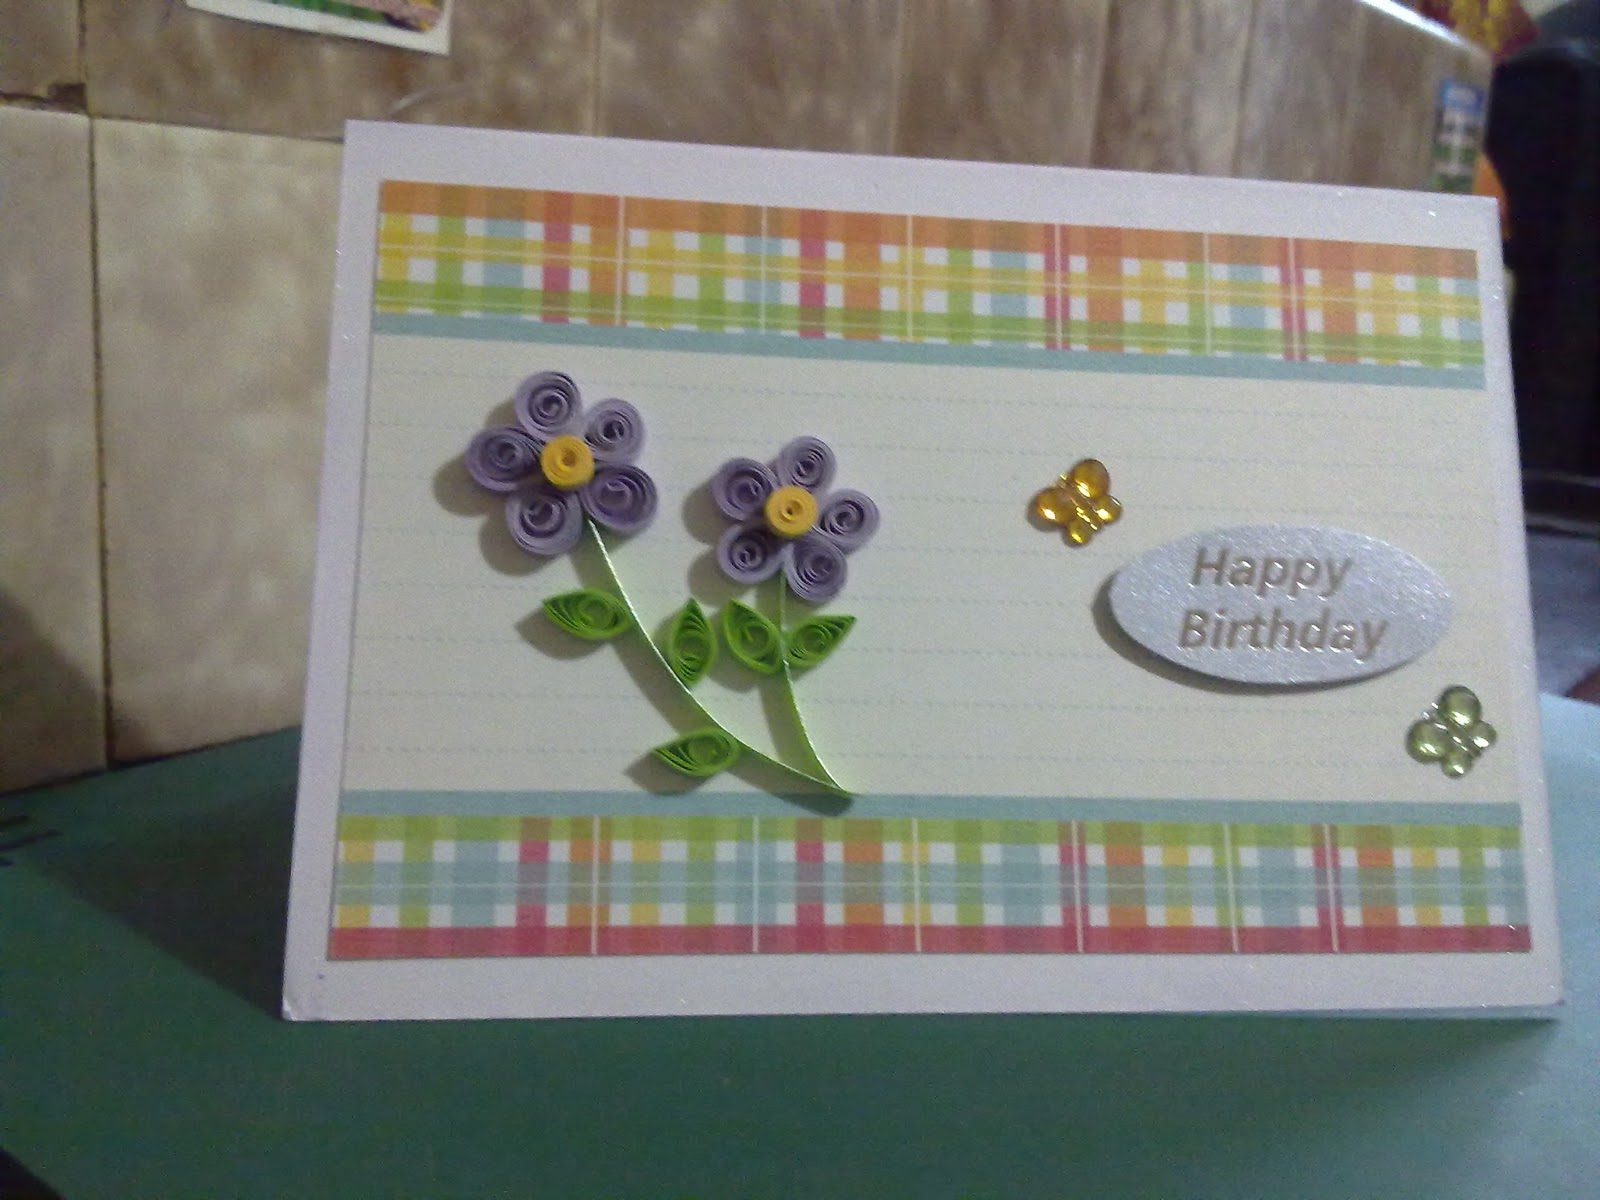 Papercrafts quilled flowers birthday card quilled flowers birthday card kristyandbryce Images